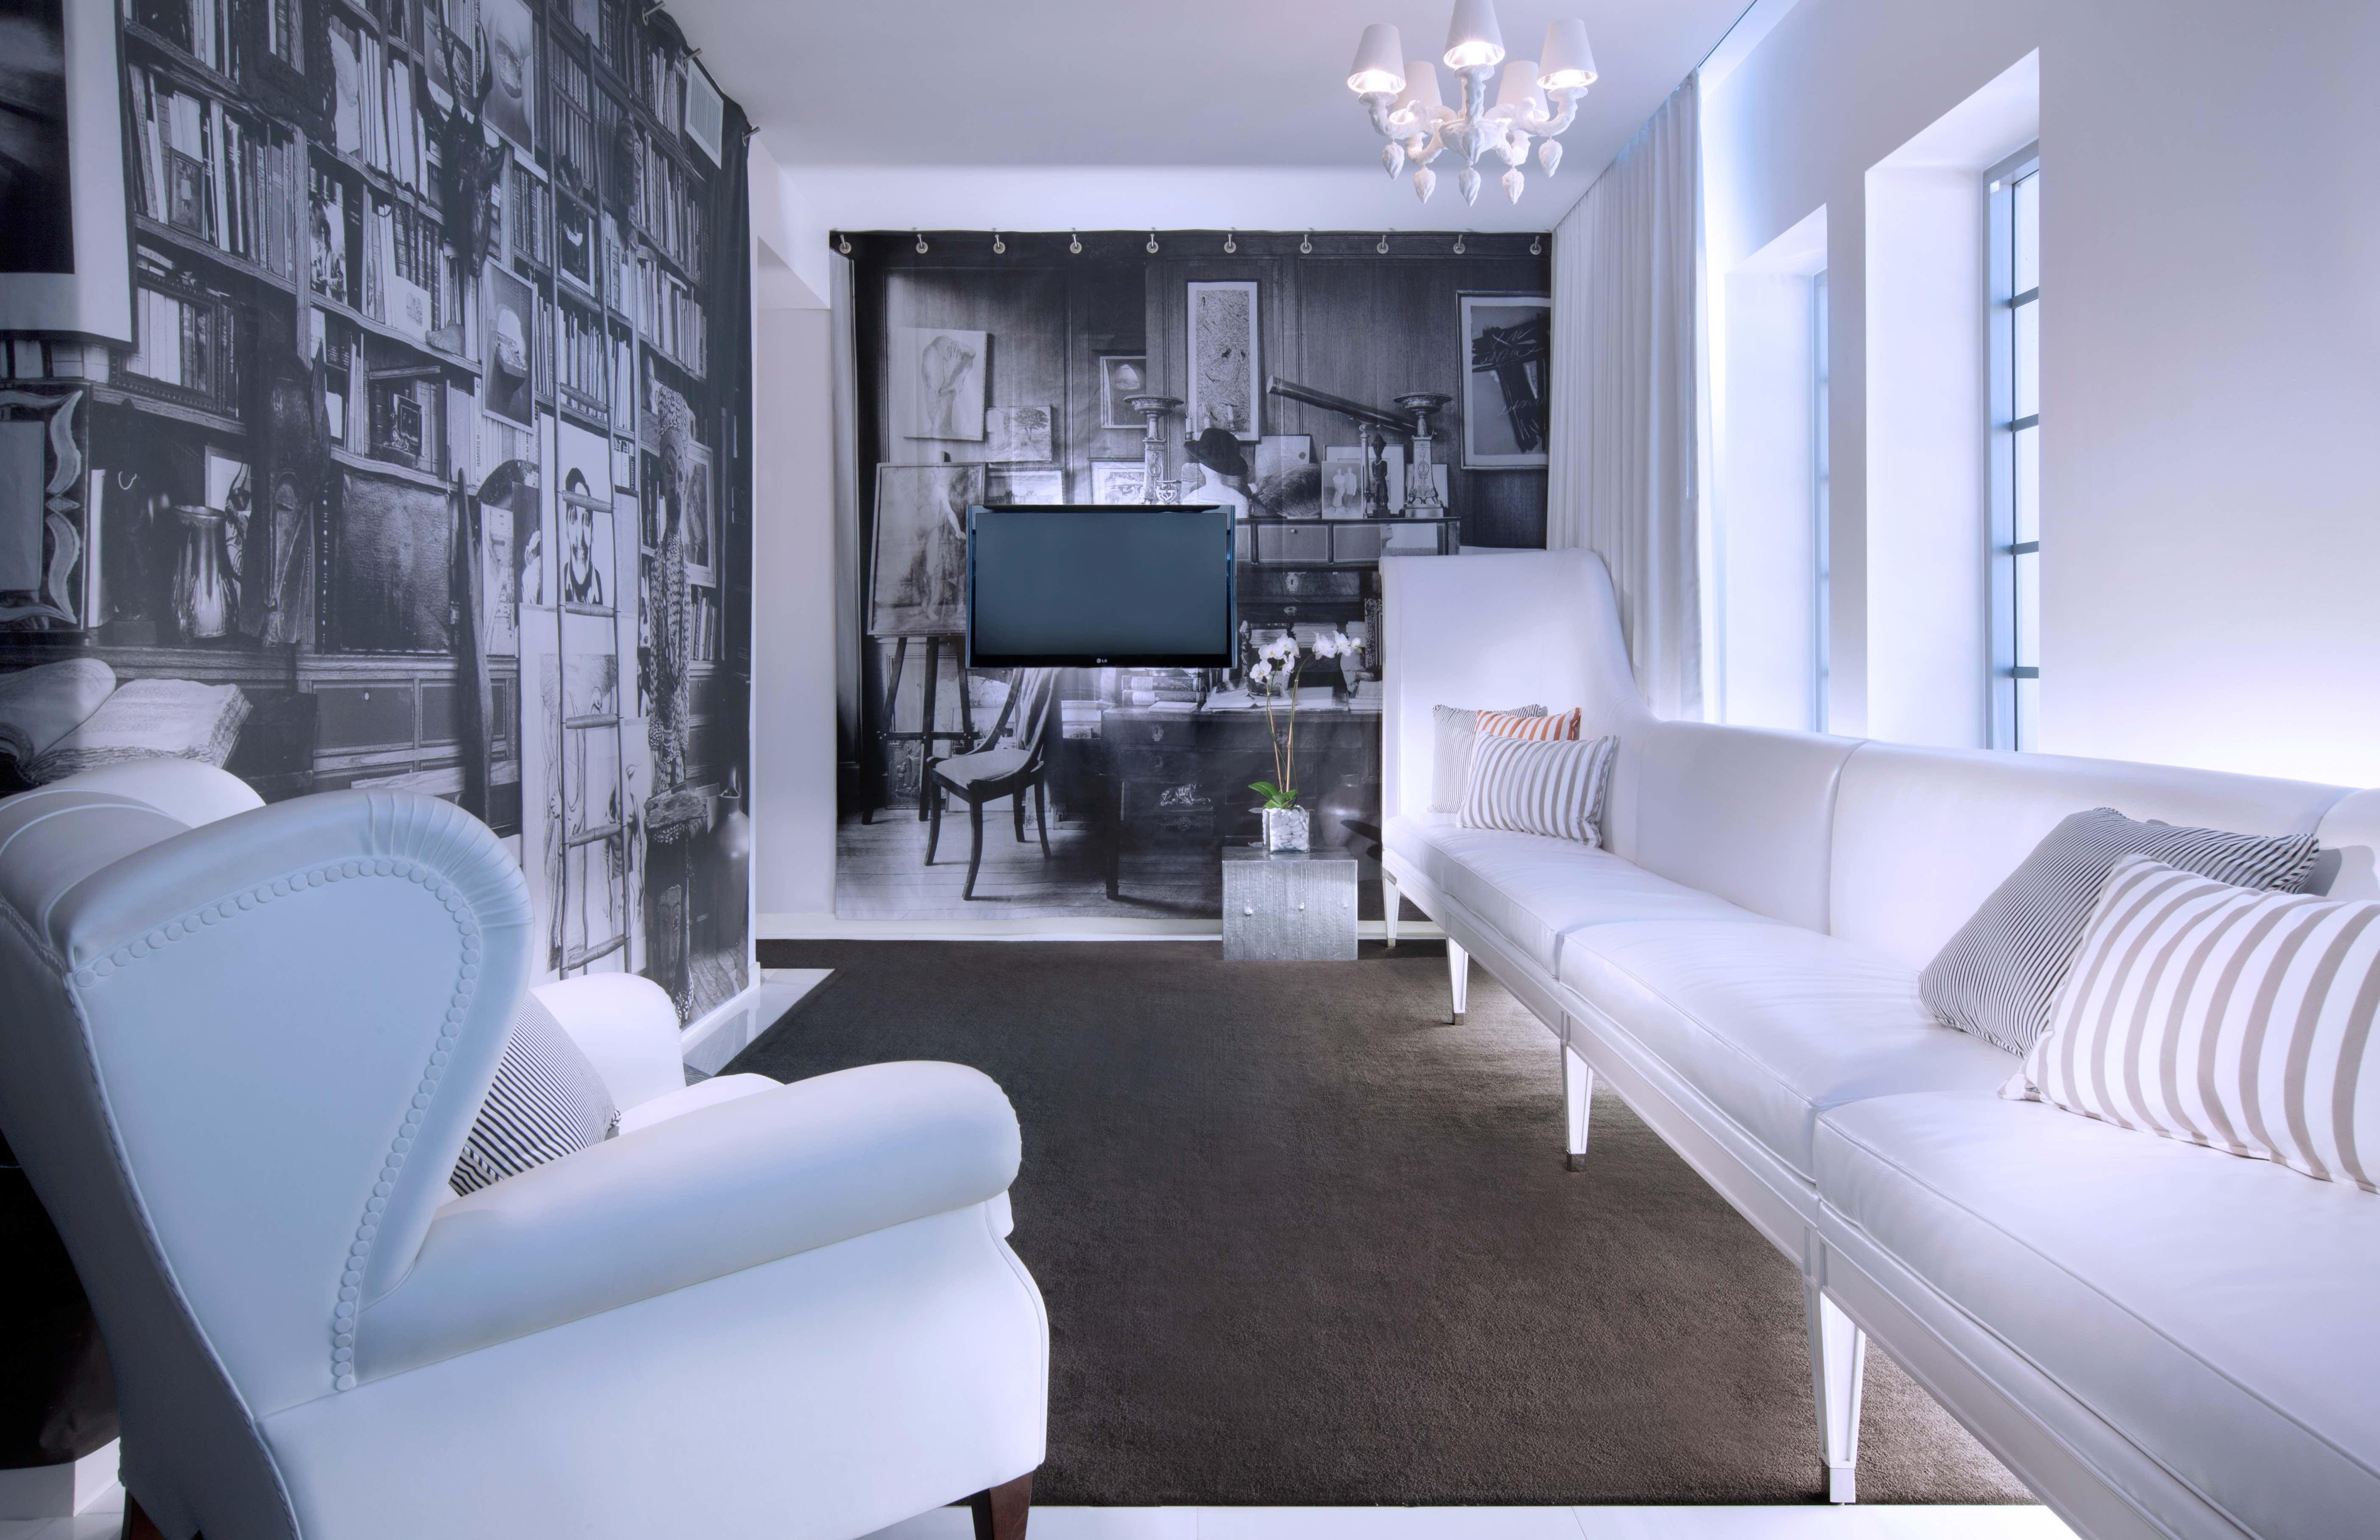 White couch and chair in front of black and white wallpaper